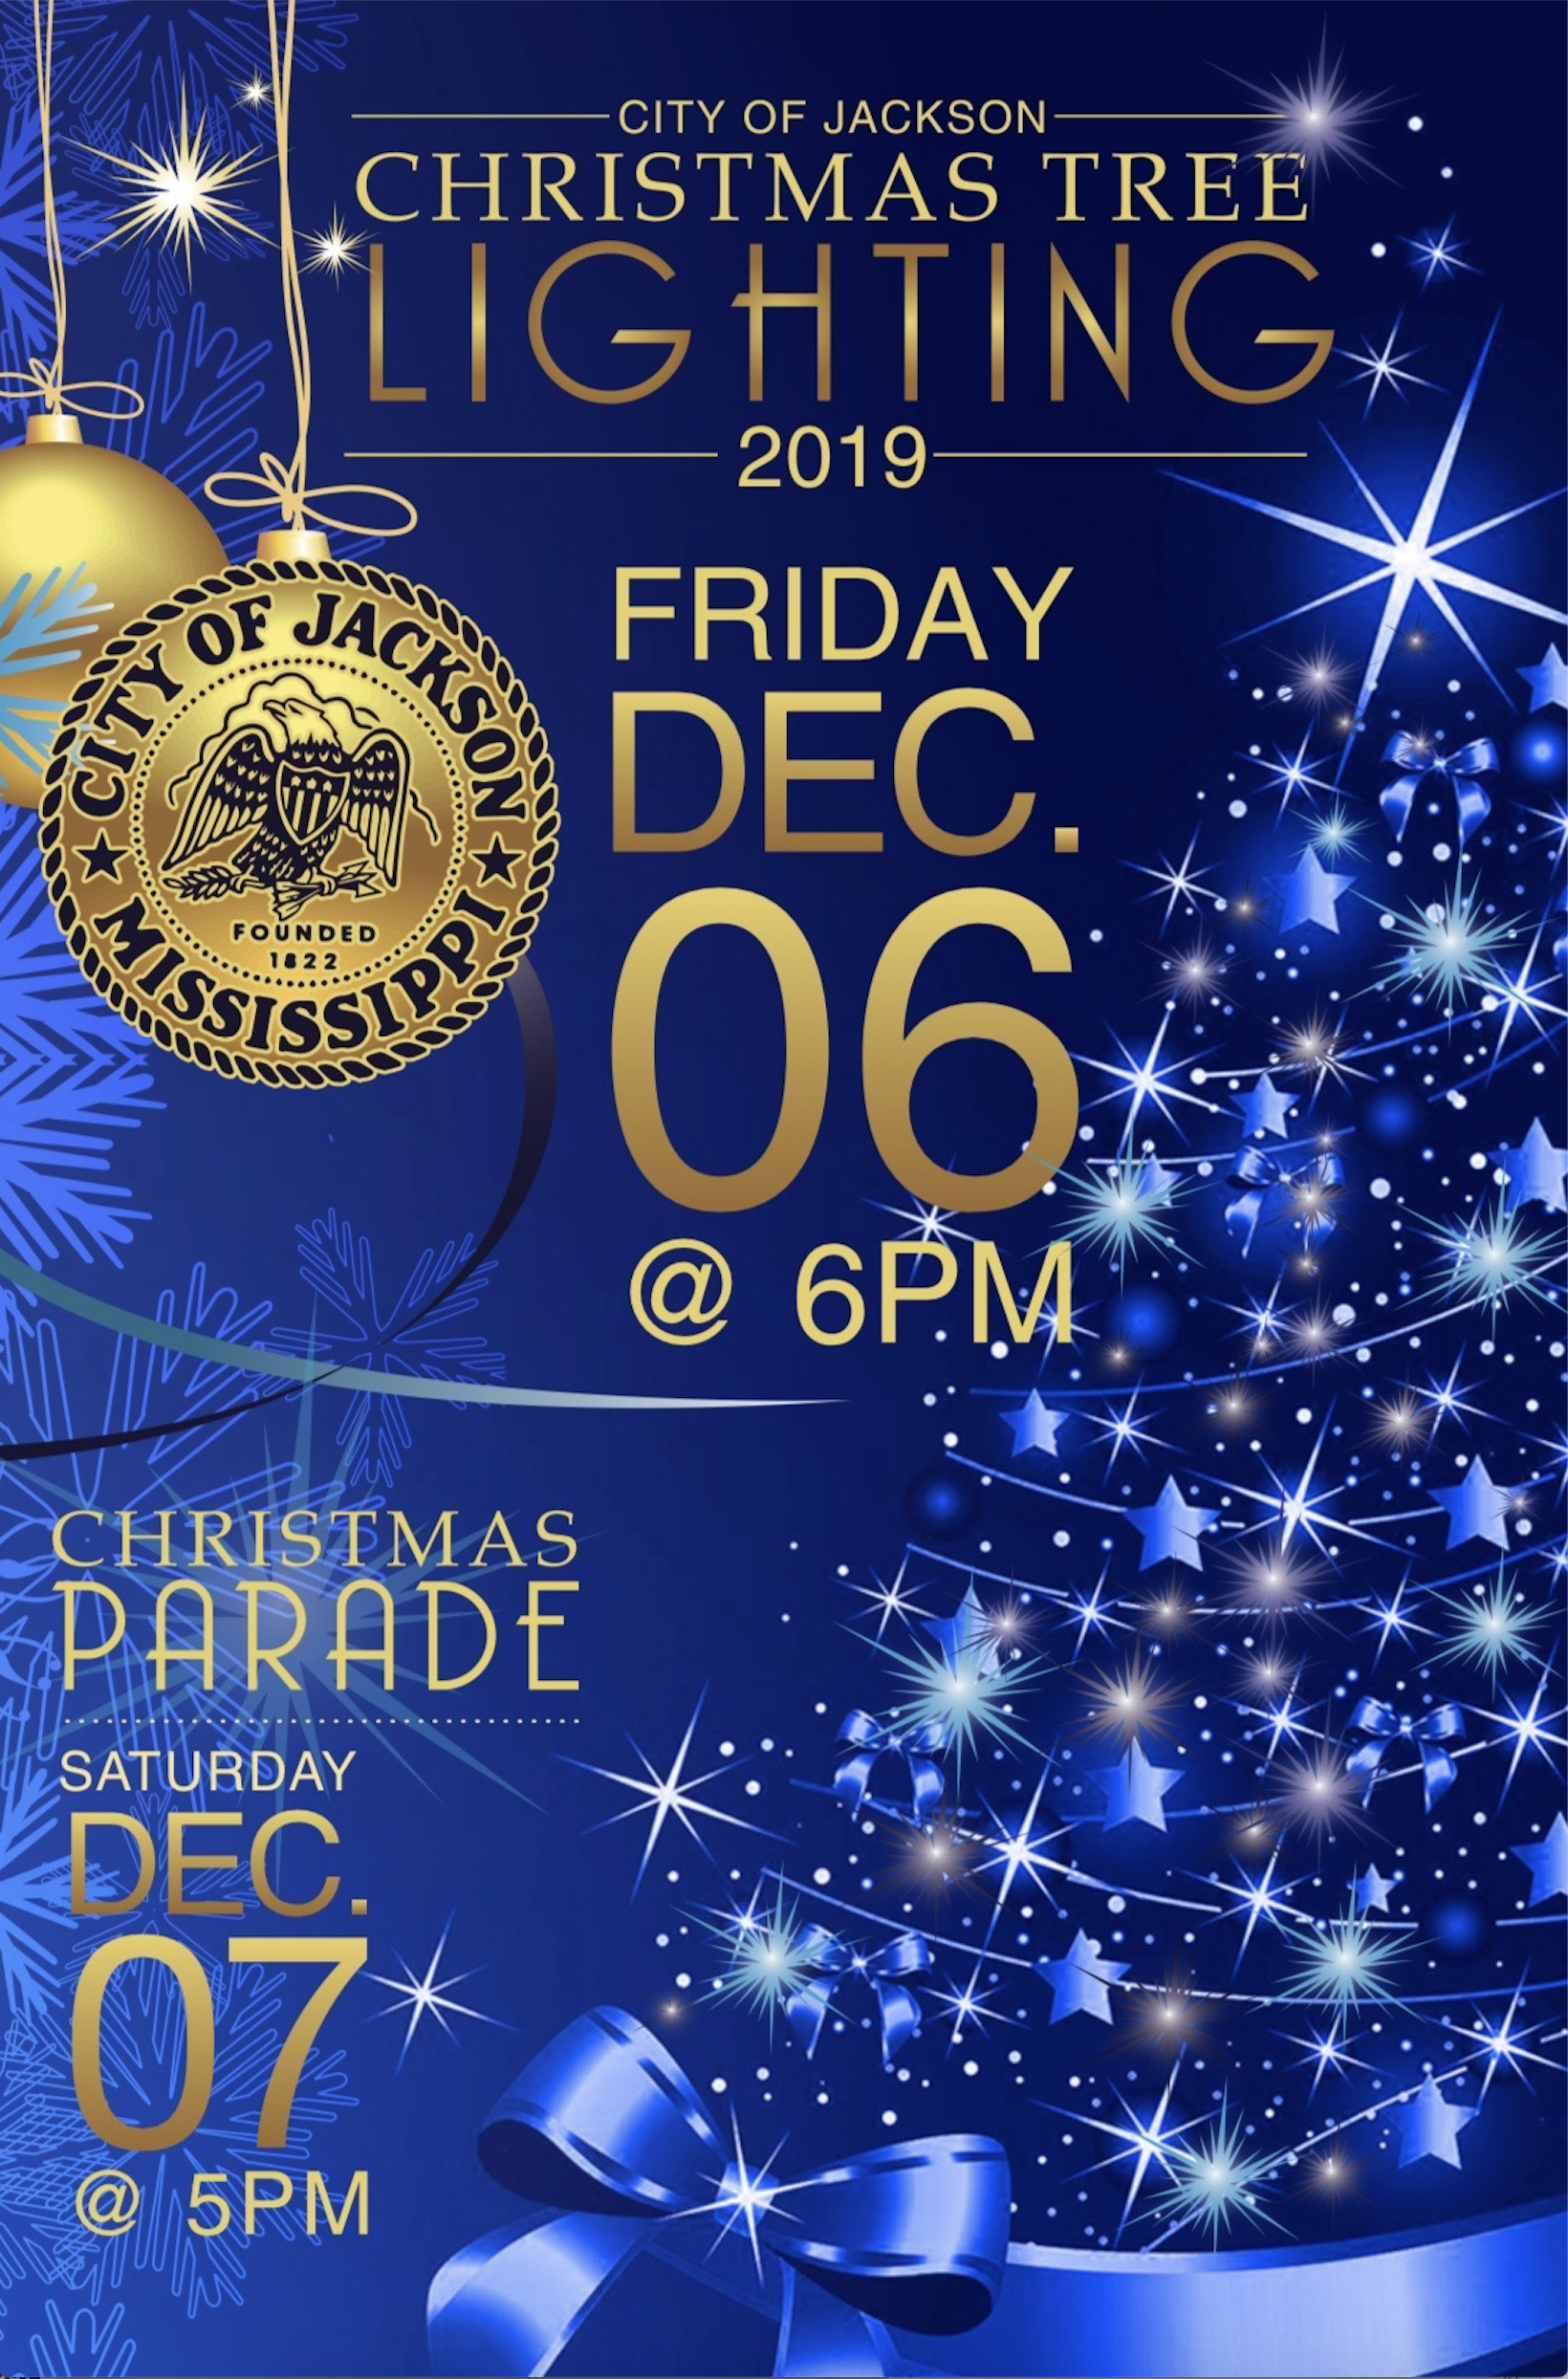 Christmas Parade Route 2020 Jackson Ms Press Release: City of Jackson to Host Annual Christmas Tree